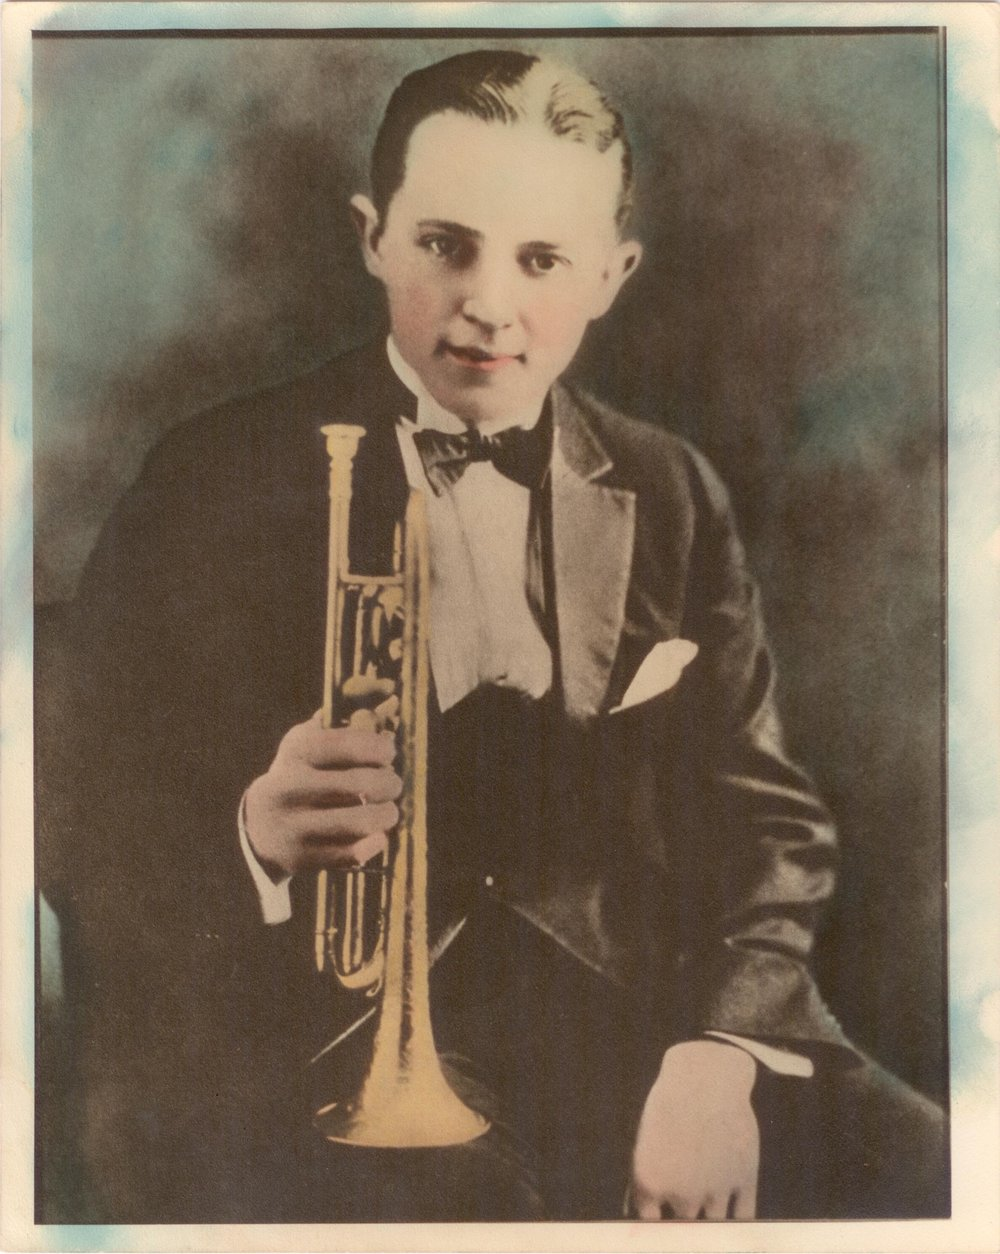 A colorized photo of Bix Beiderbecke, 1924. Courtesy of Indiana University.